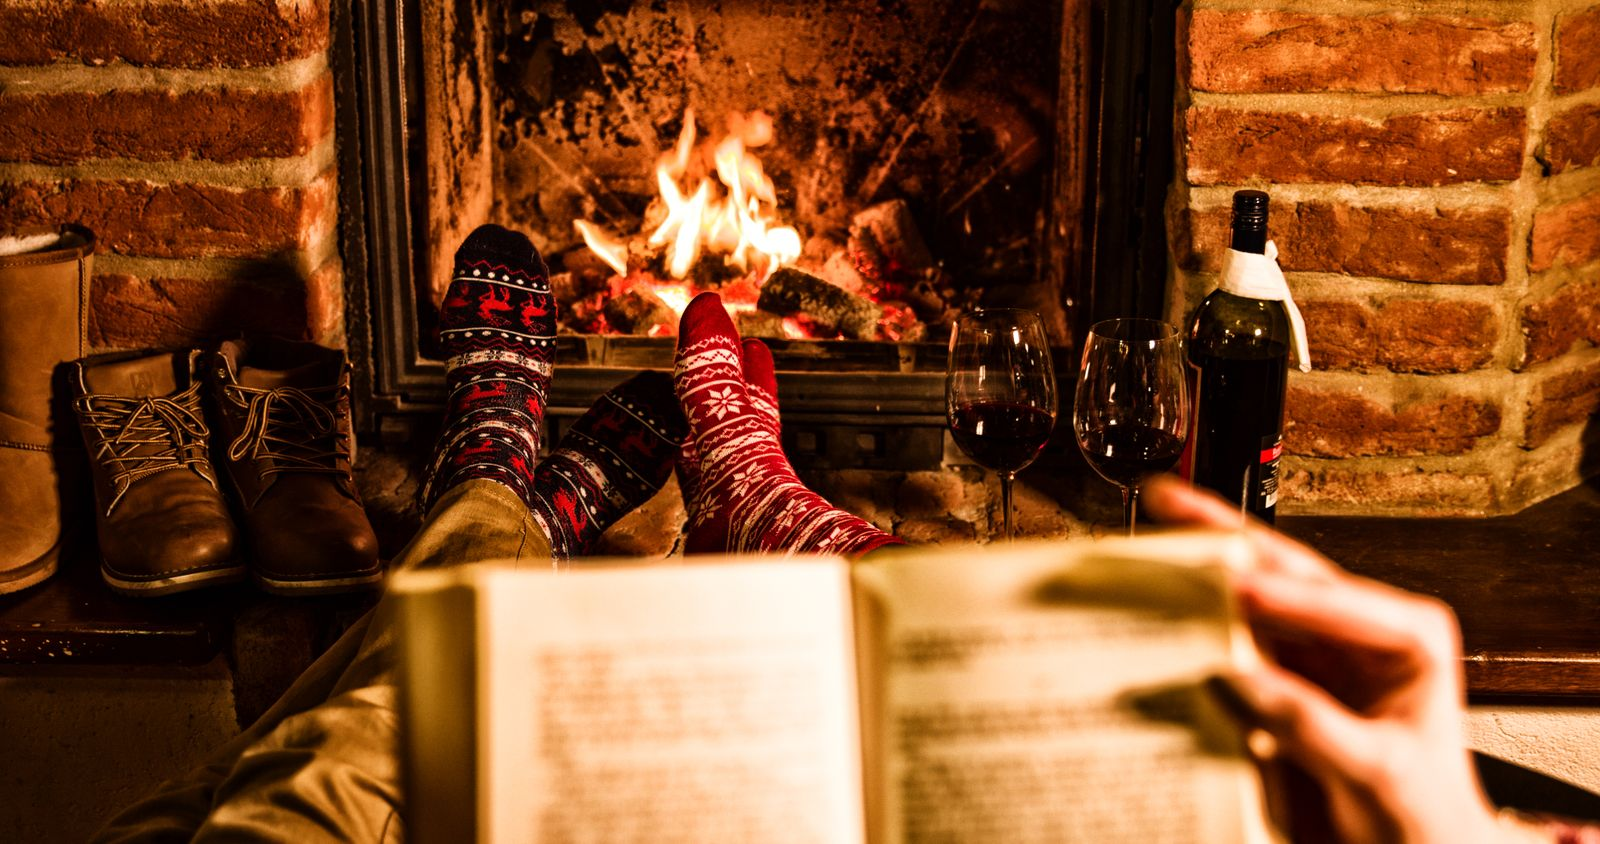 Couple with book resting by fireplace during Xmas